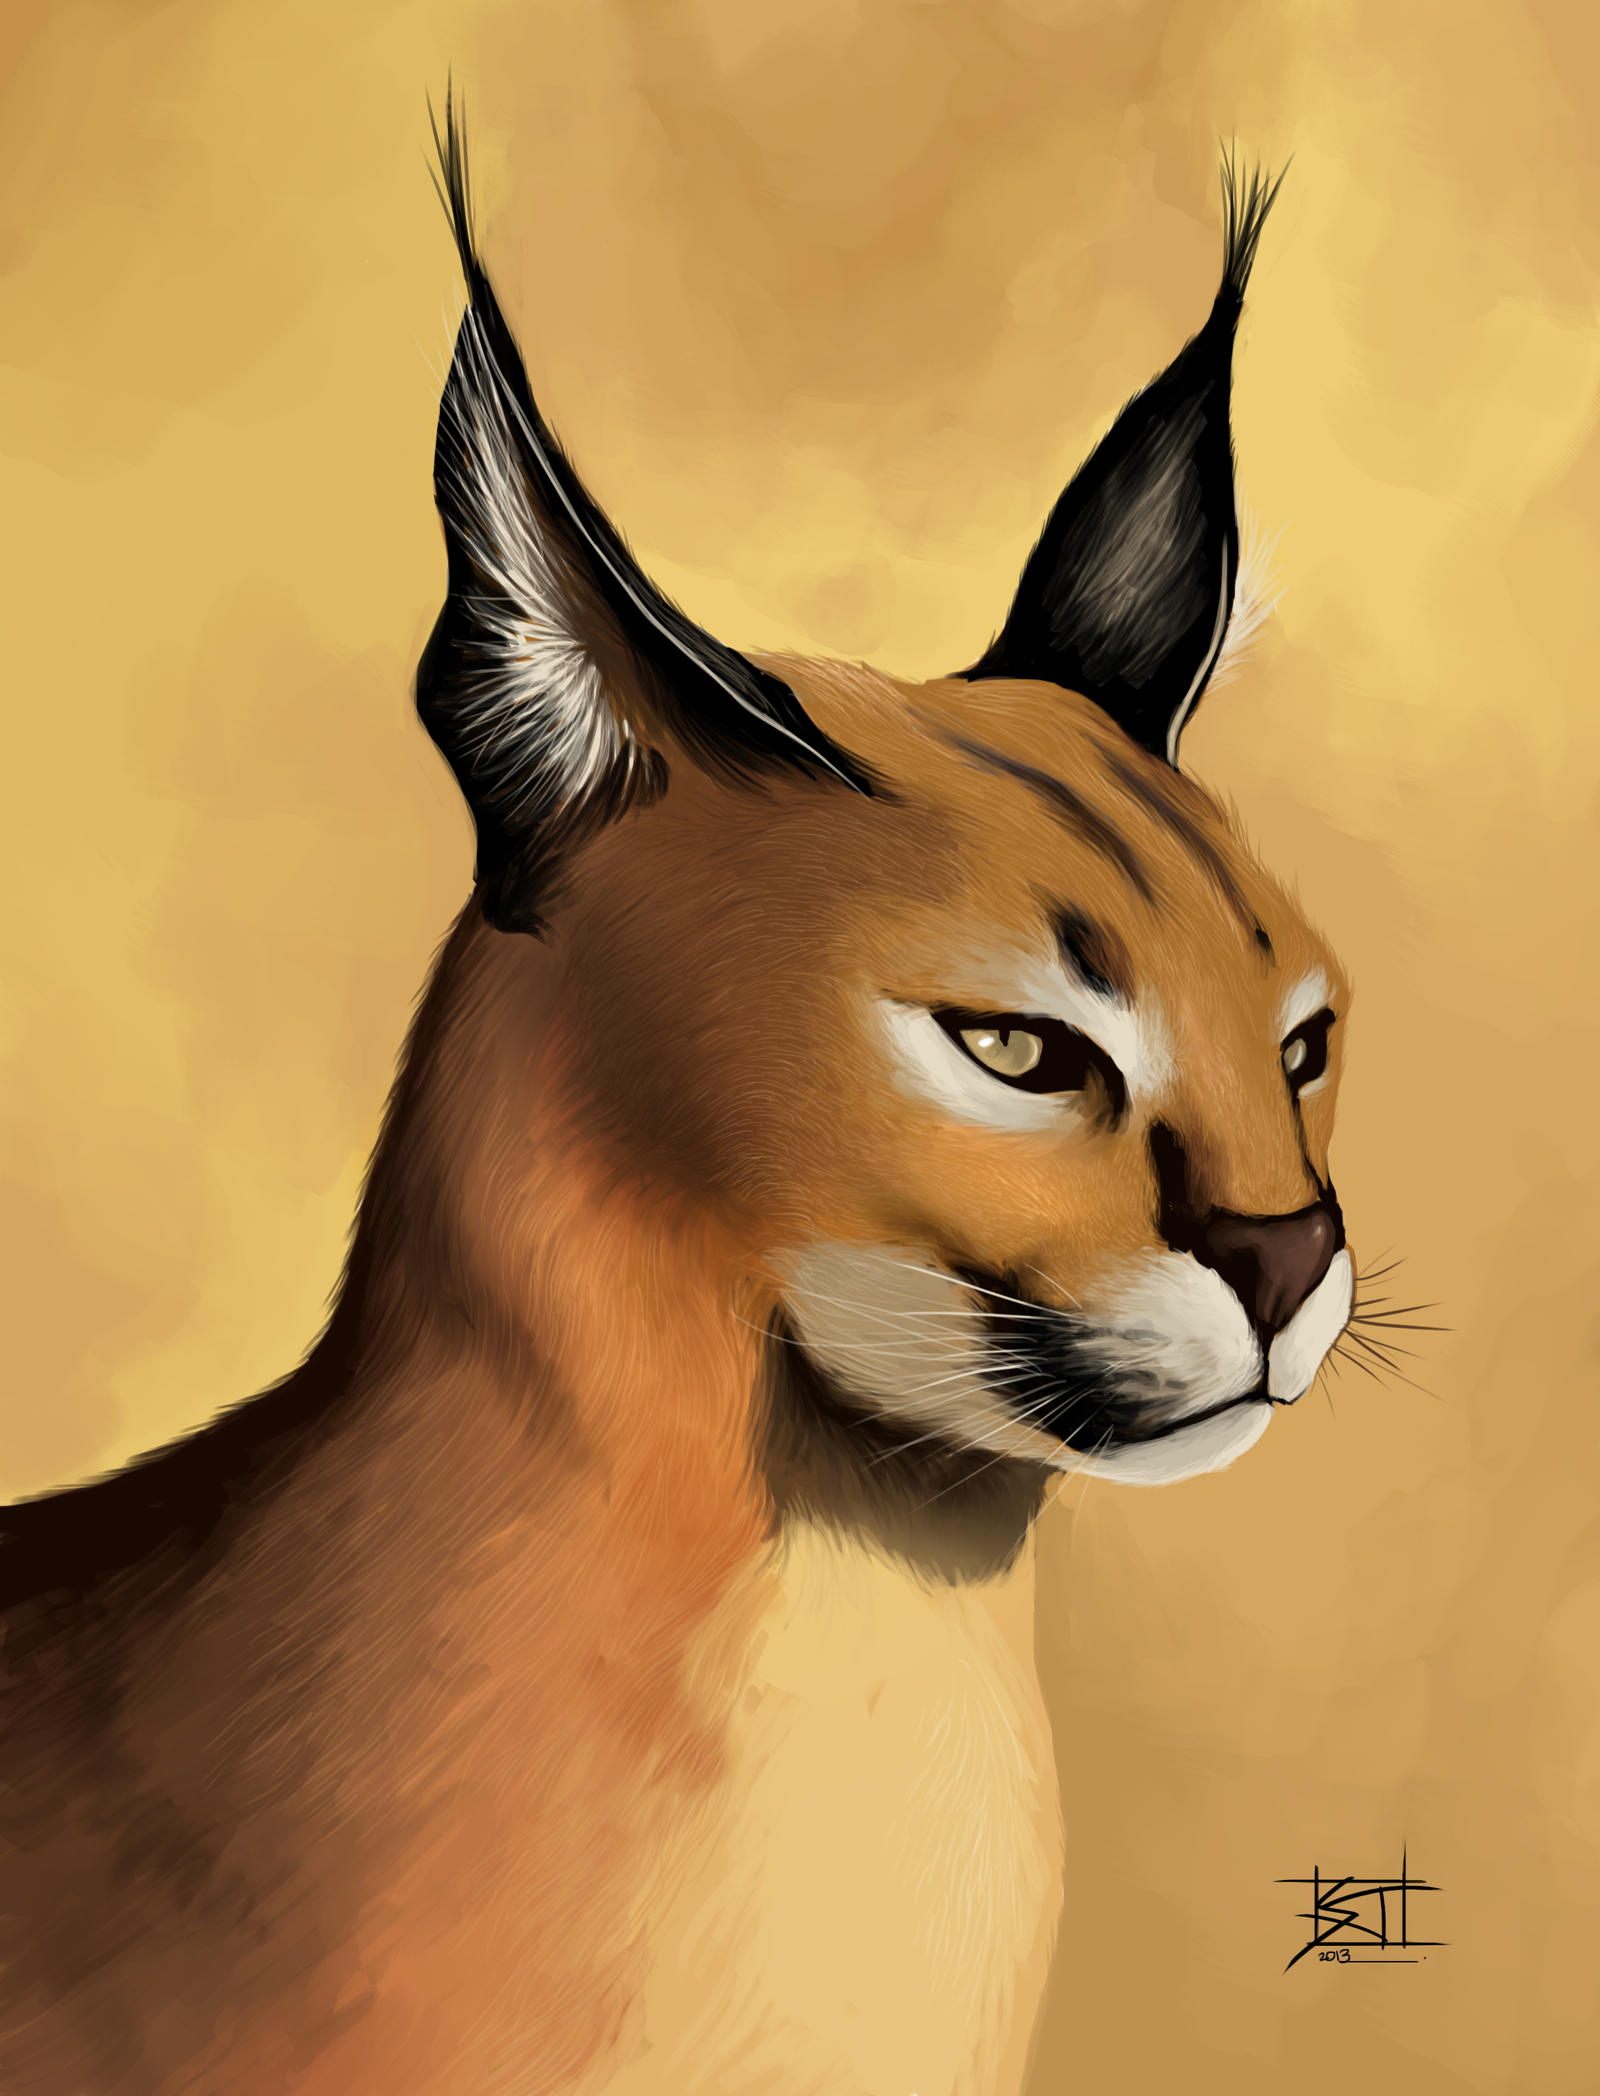 Caracal drawing - photo#8